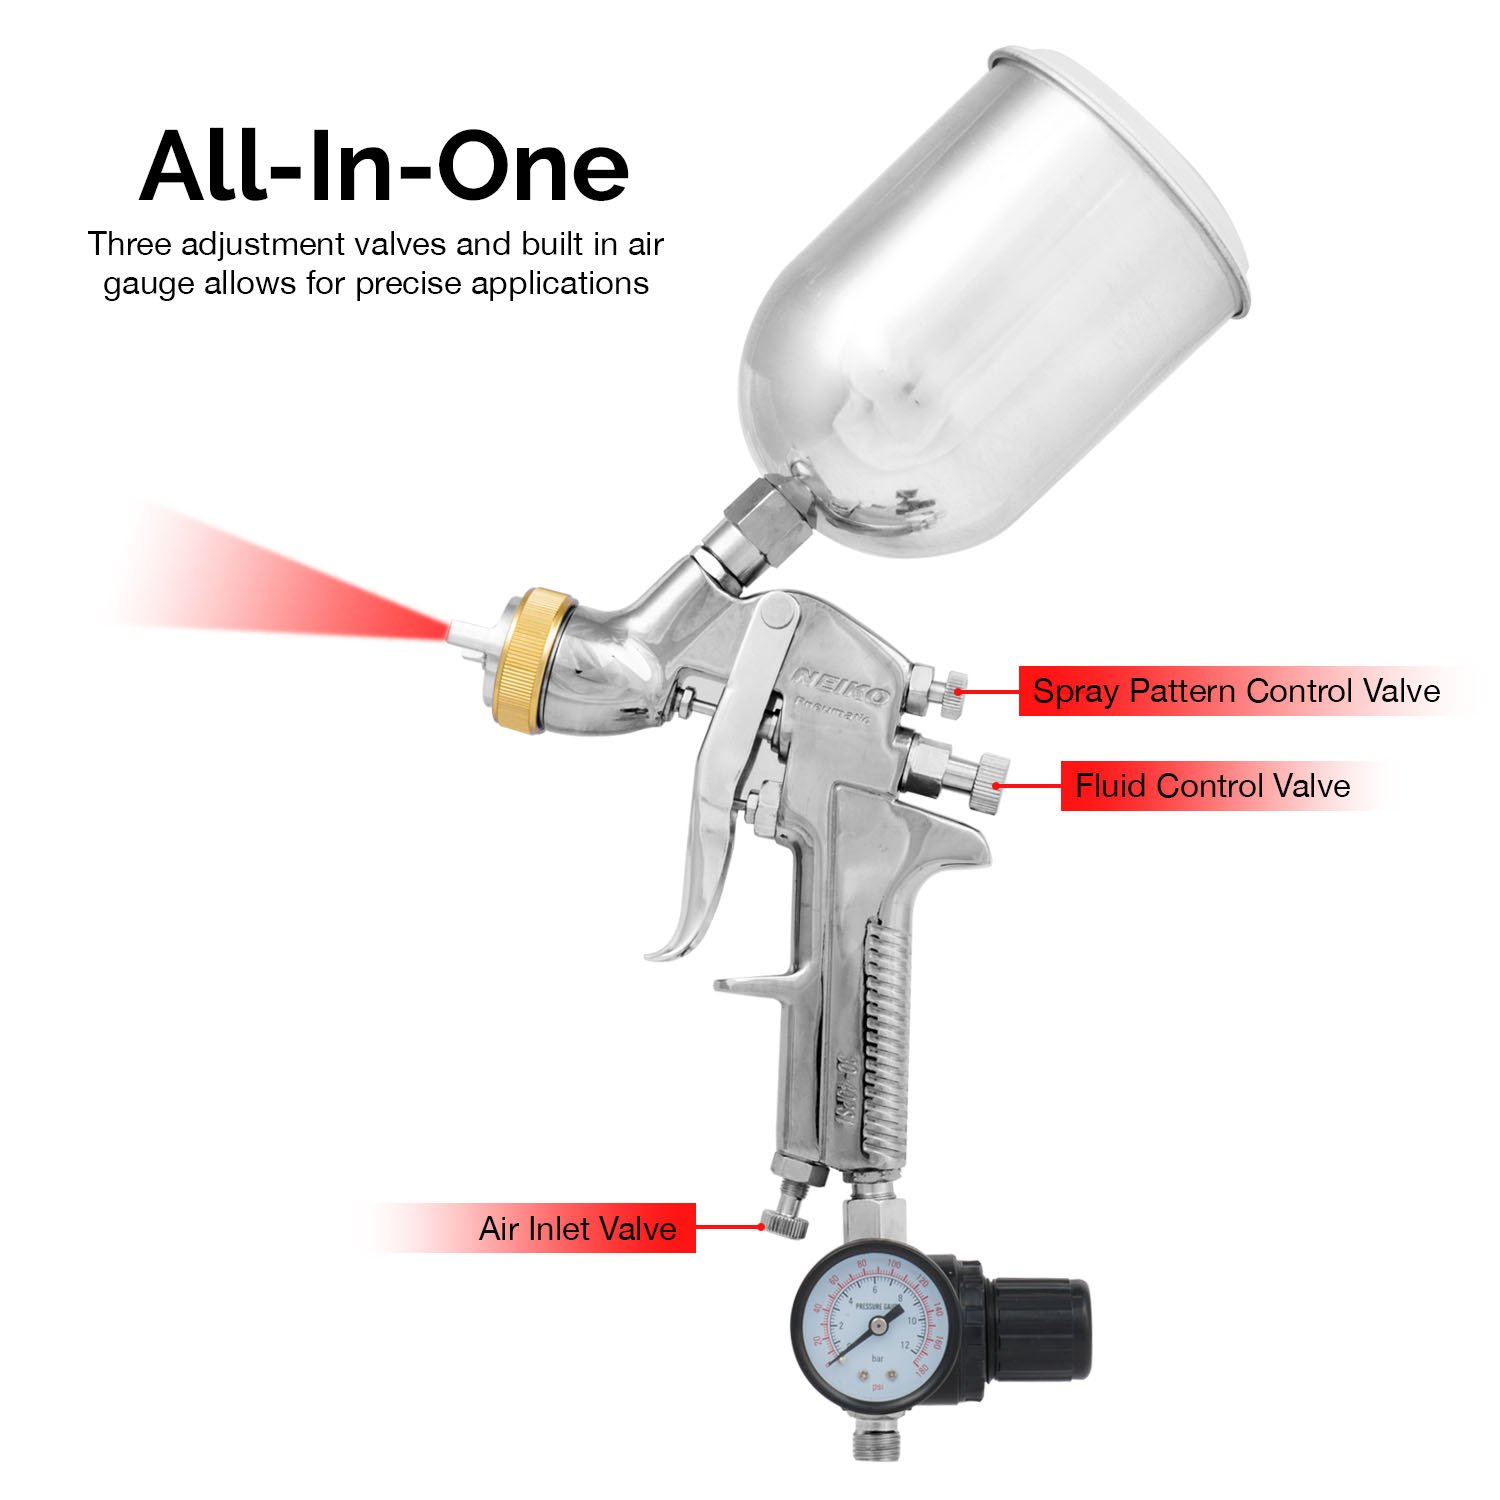 Neiko 31215A HVLP Gravity Feed Air Spray Gun | 1.7mm Nozzle Size | 600cc Aluminum Cup by Neiko (Image #3)